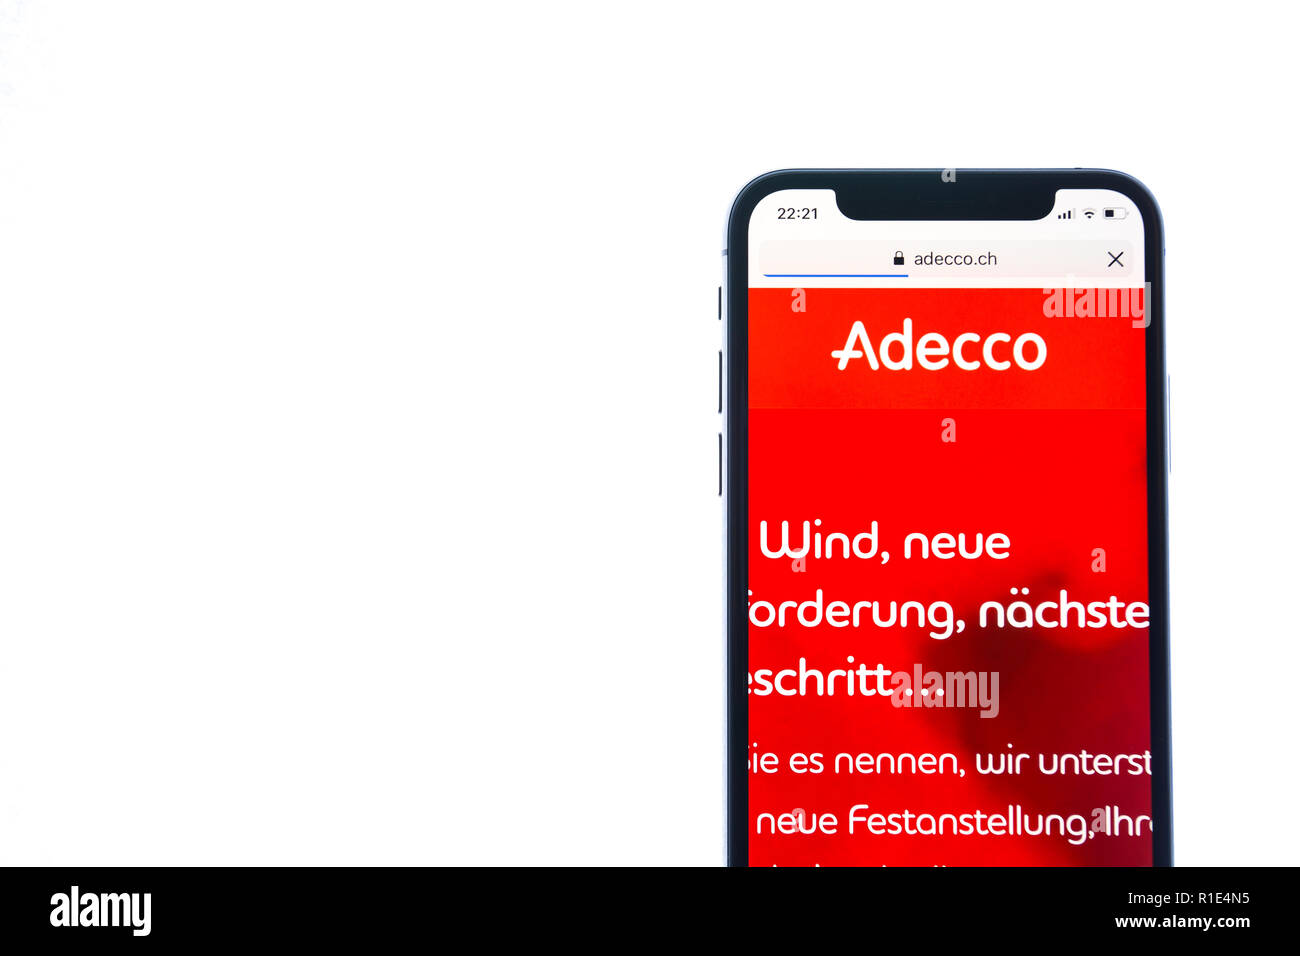 SOLOTHURN, SWITZERLAND - NOVEMBER 11, 2018: Adecco logo displayed on a modern smartphone - Stock Image